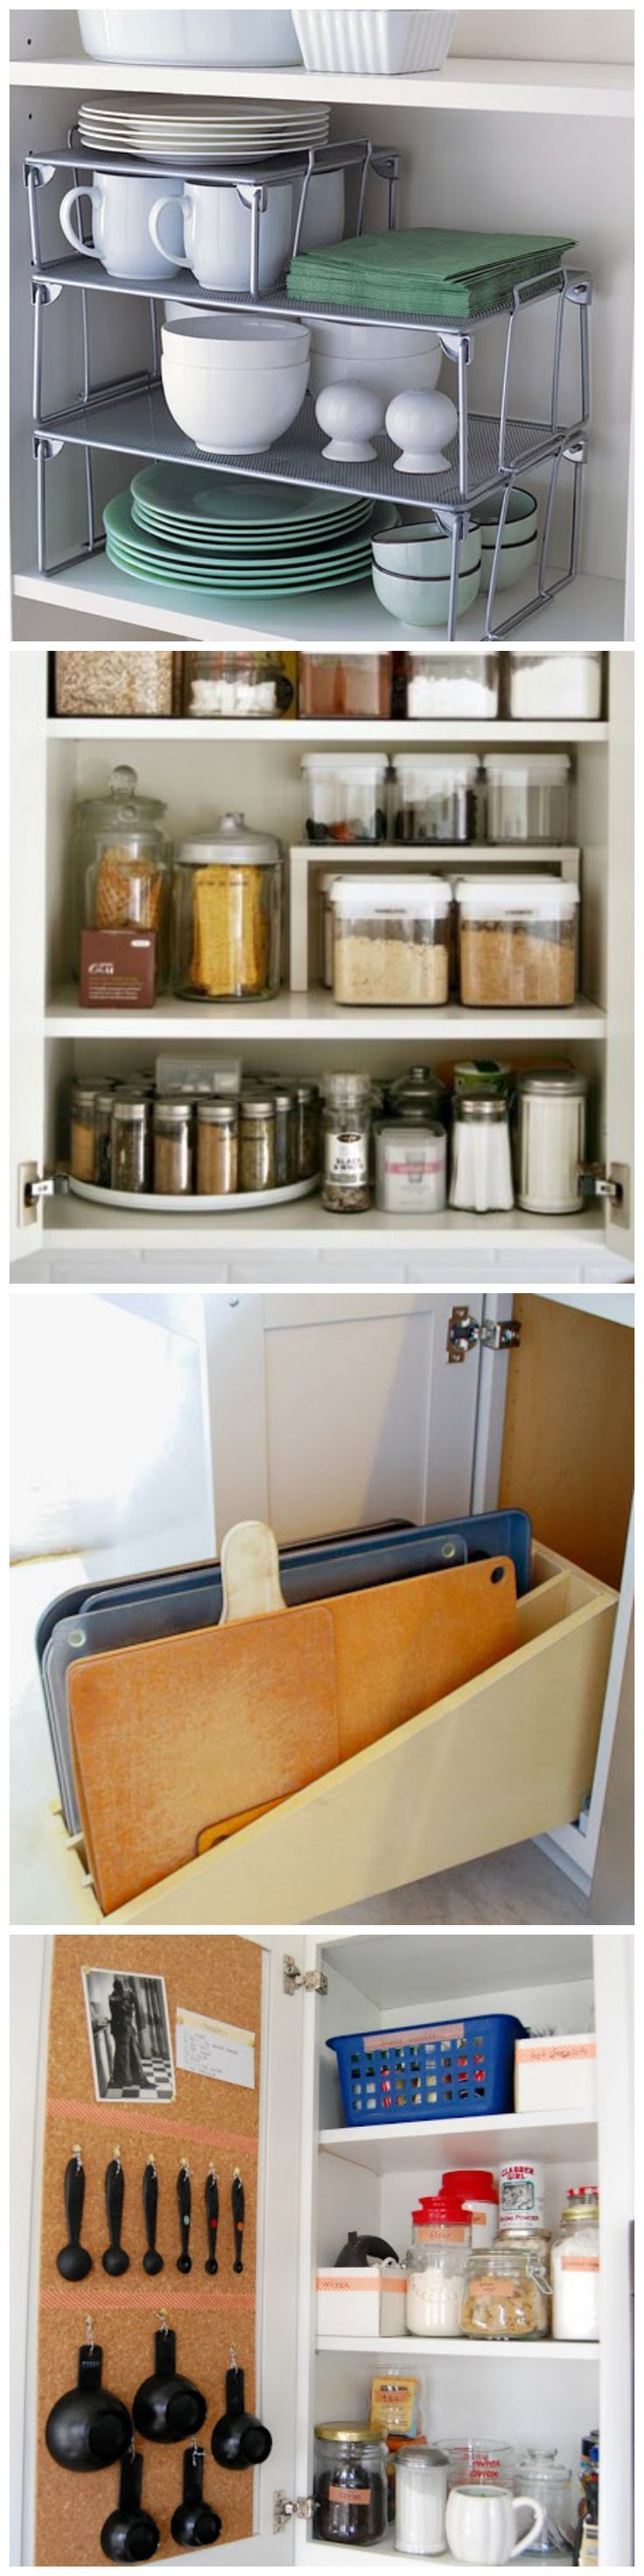 219 best kitchen organization images on pinterest kitchen